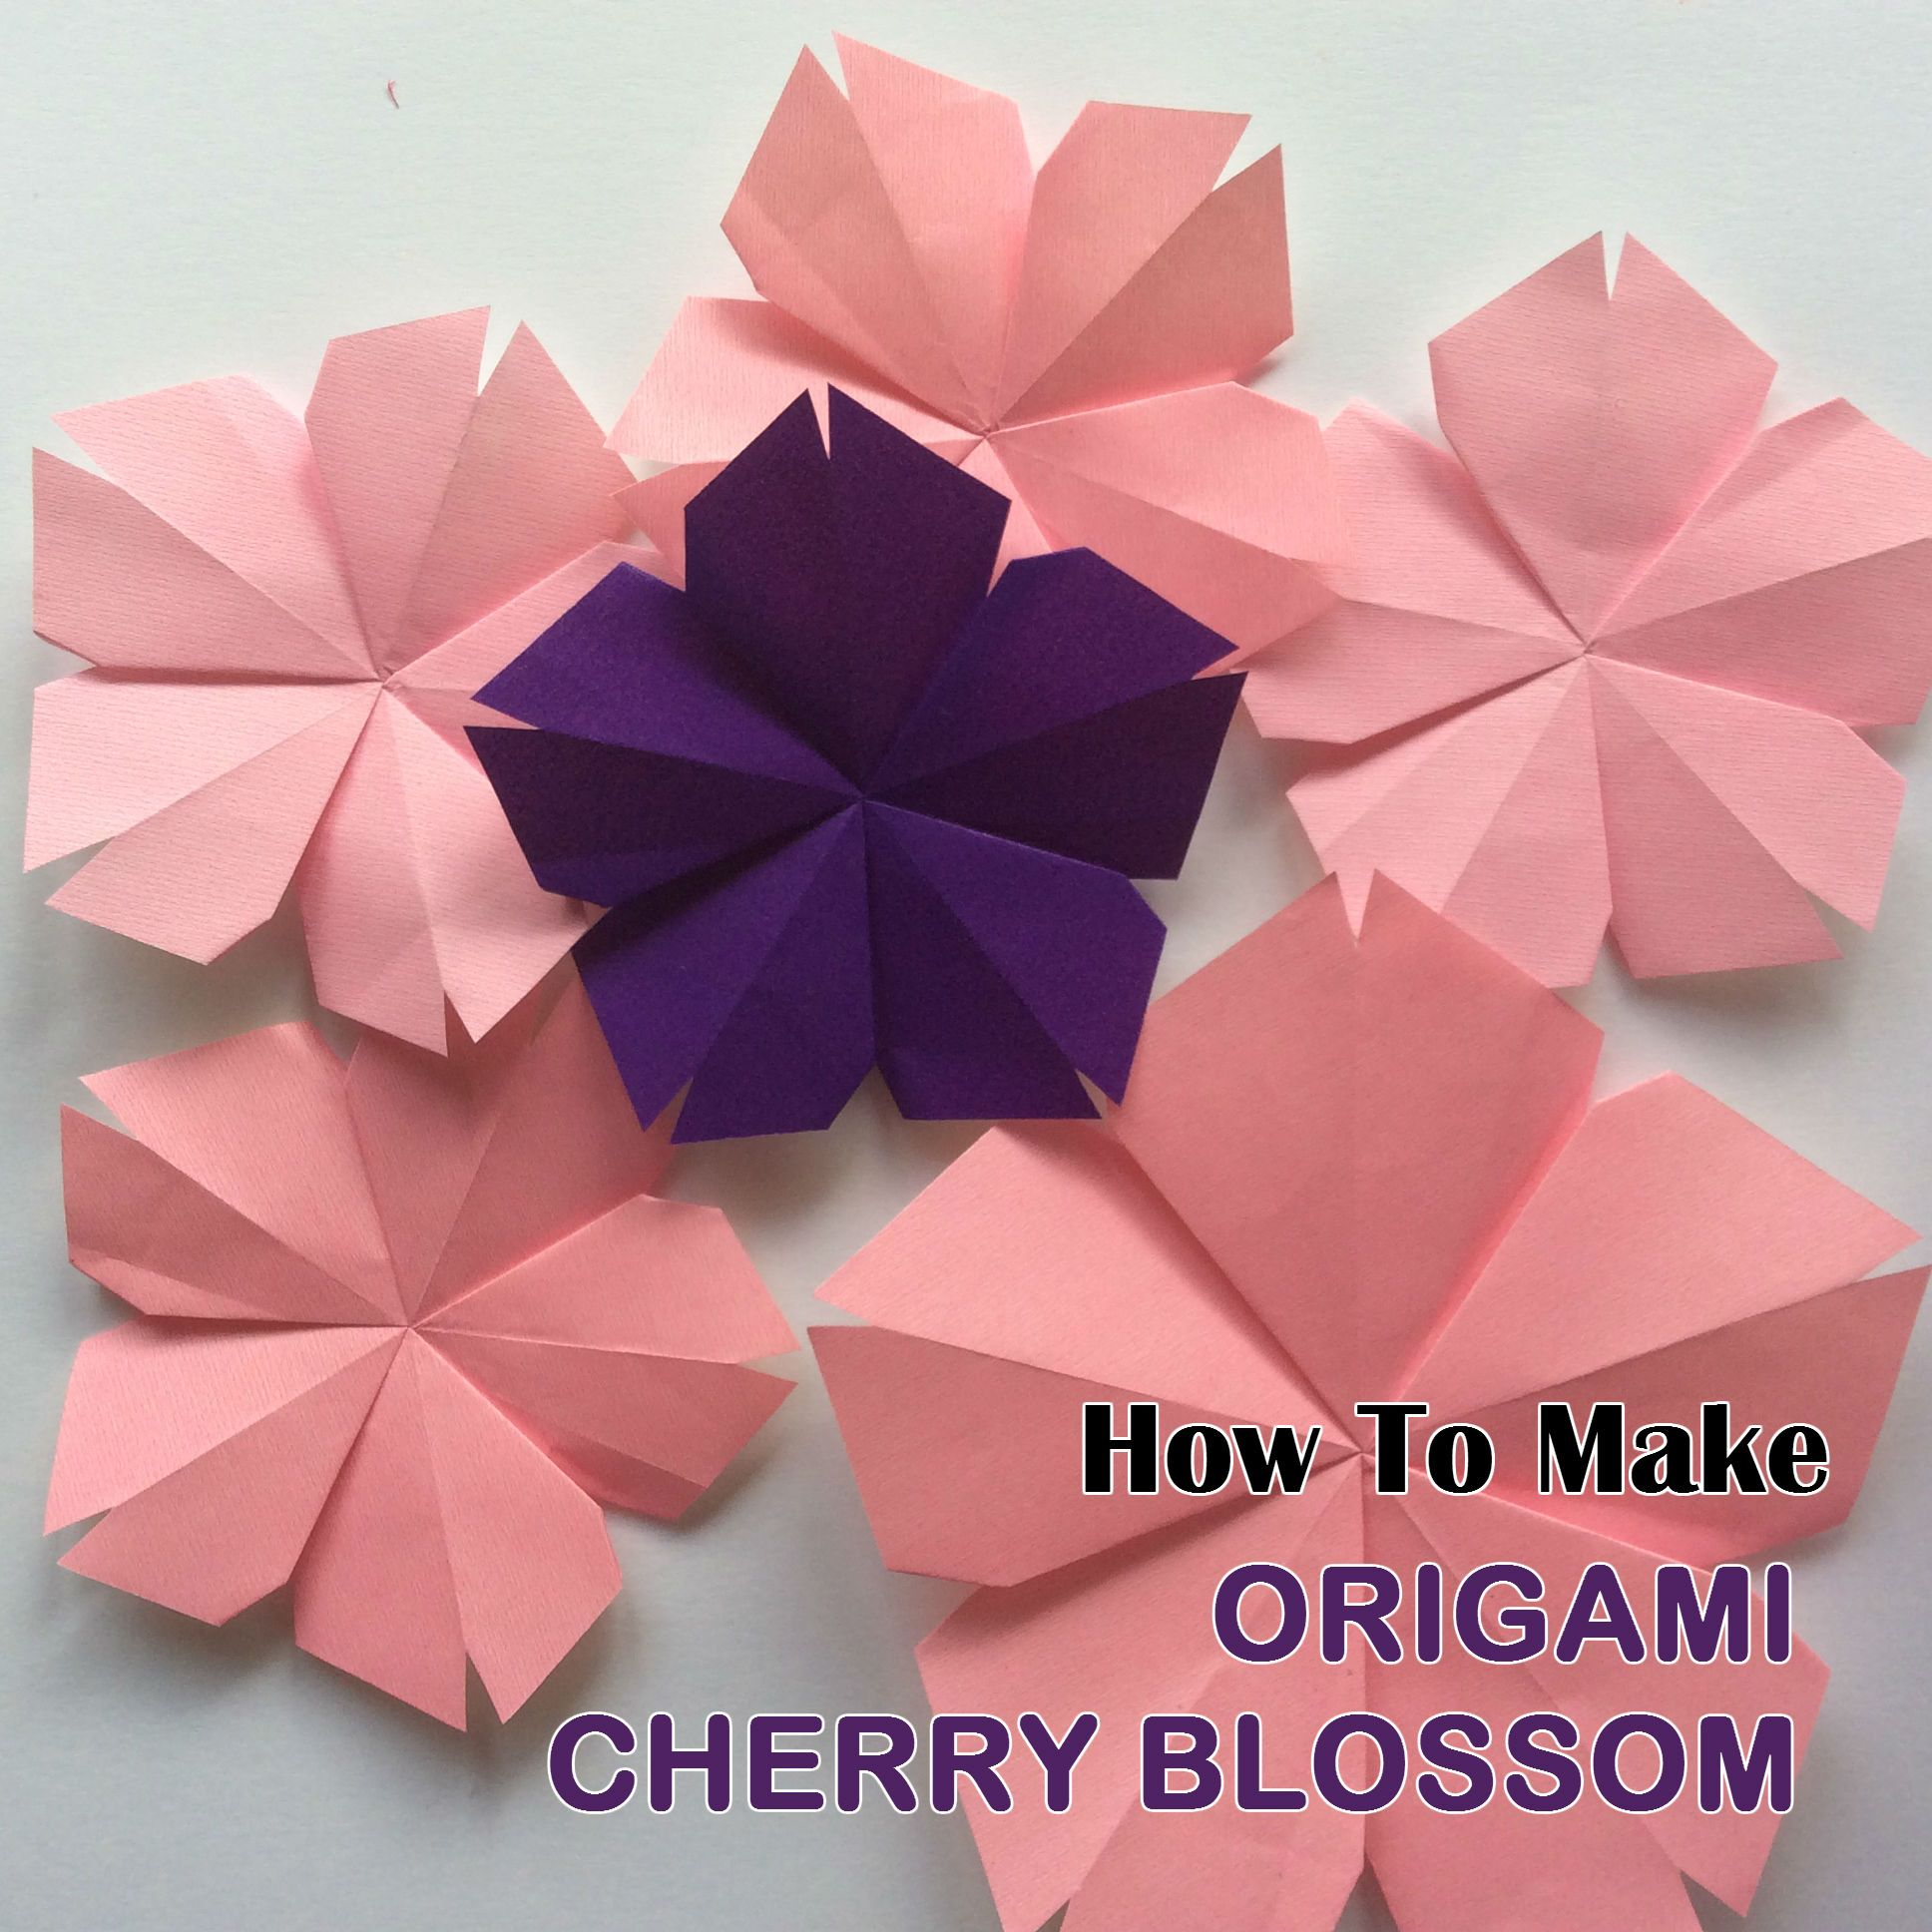 How to make origami cherry blossom easy origami origami tutorial how to make origami cherry blossom easy origami origami tutorial for beginners mightylinksfo